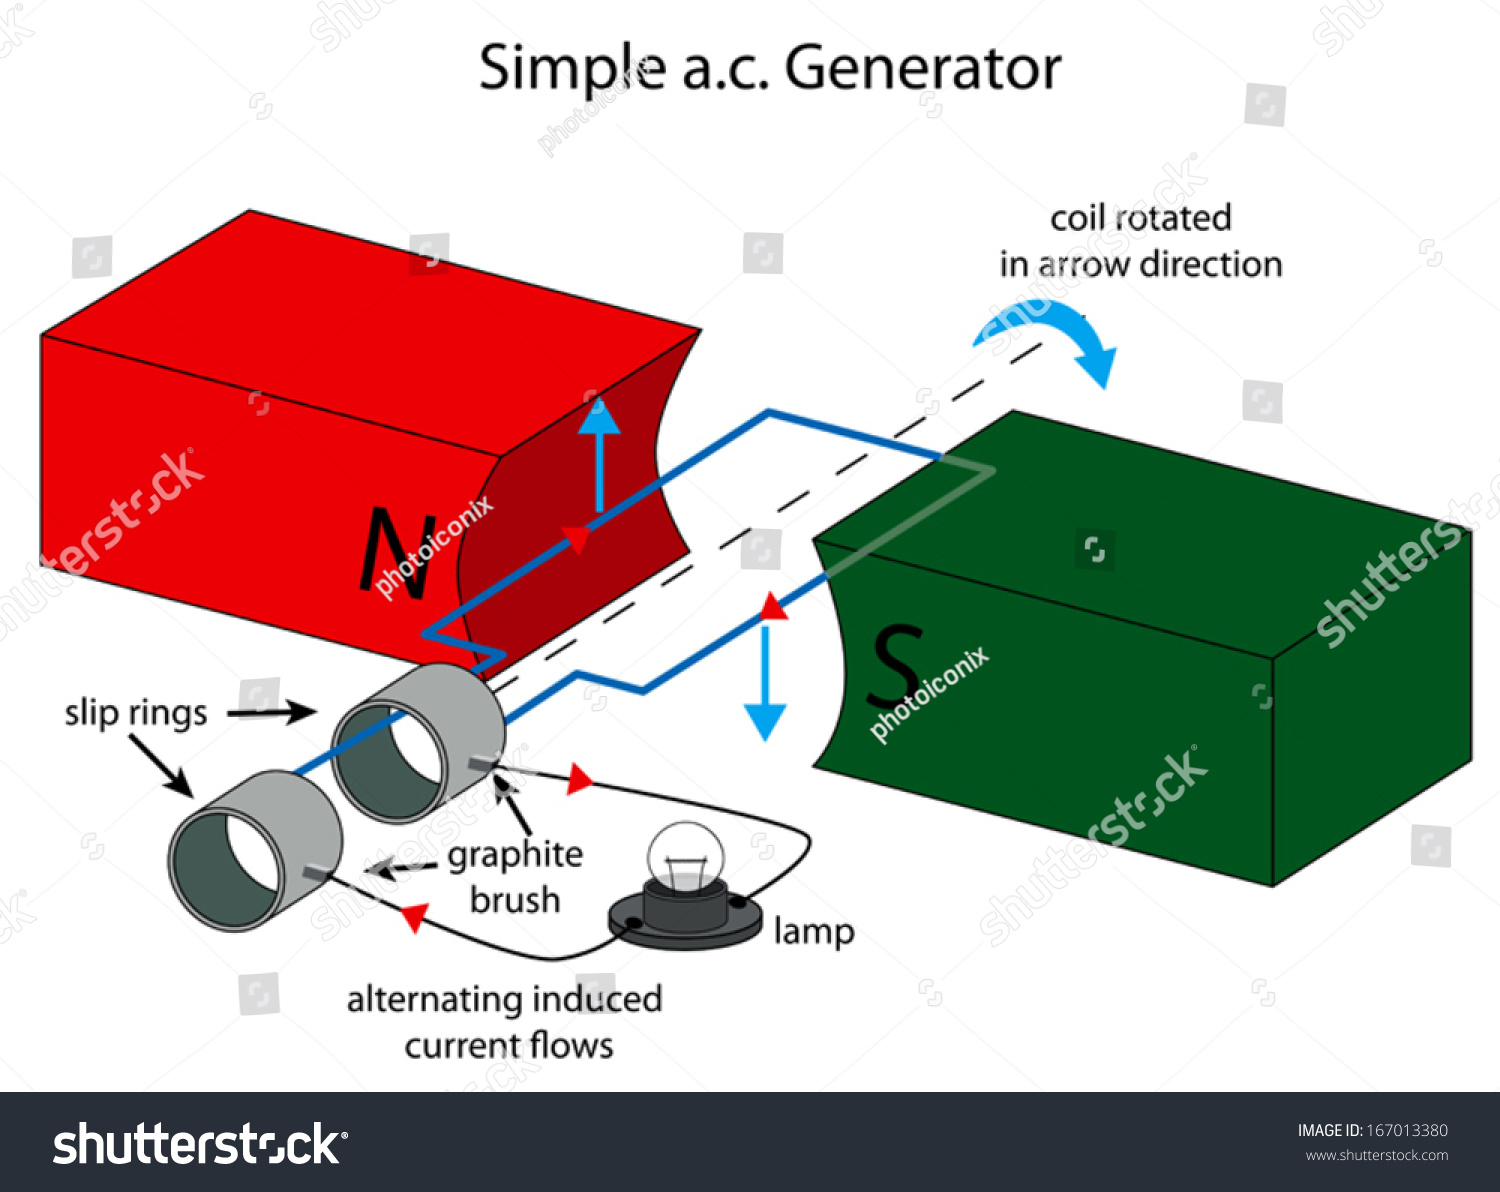 illustration simple ac generator stock vector 167013380 Gaussian Curvature Normal Vector show vector is normal to plane